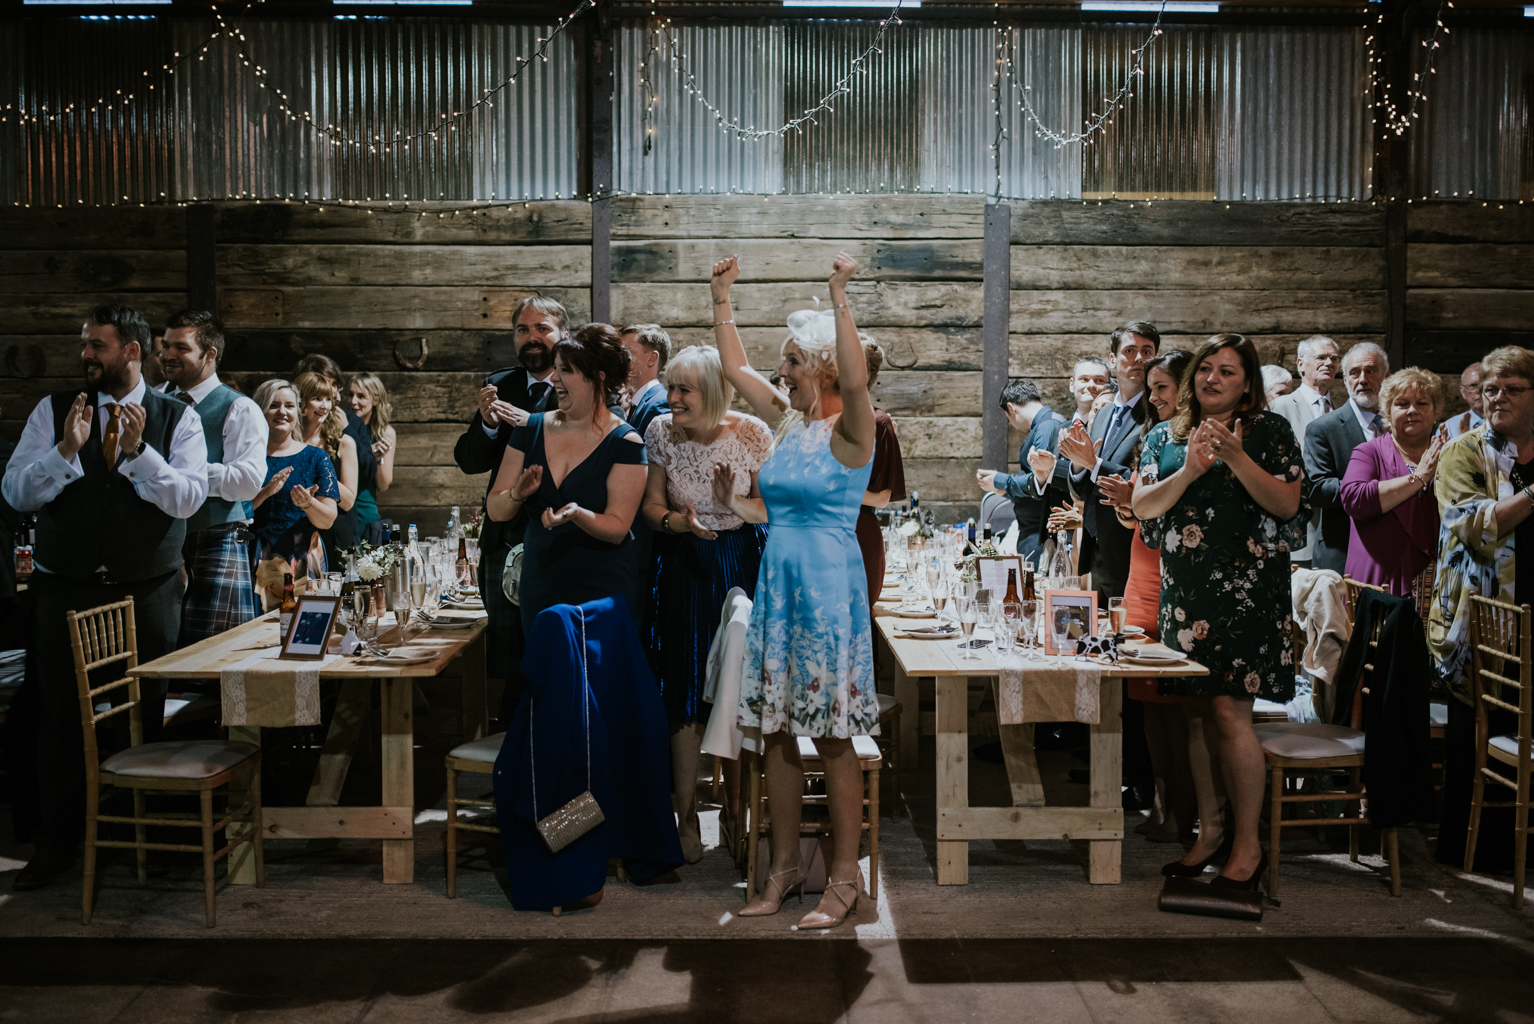 Guests are welcoming the wedding couple to the wedding reception at Harelaw farm.